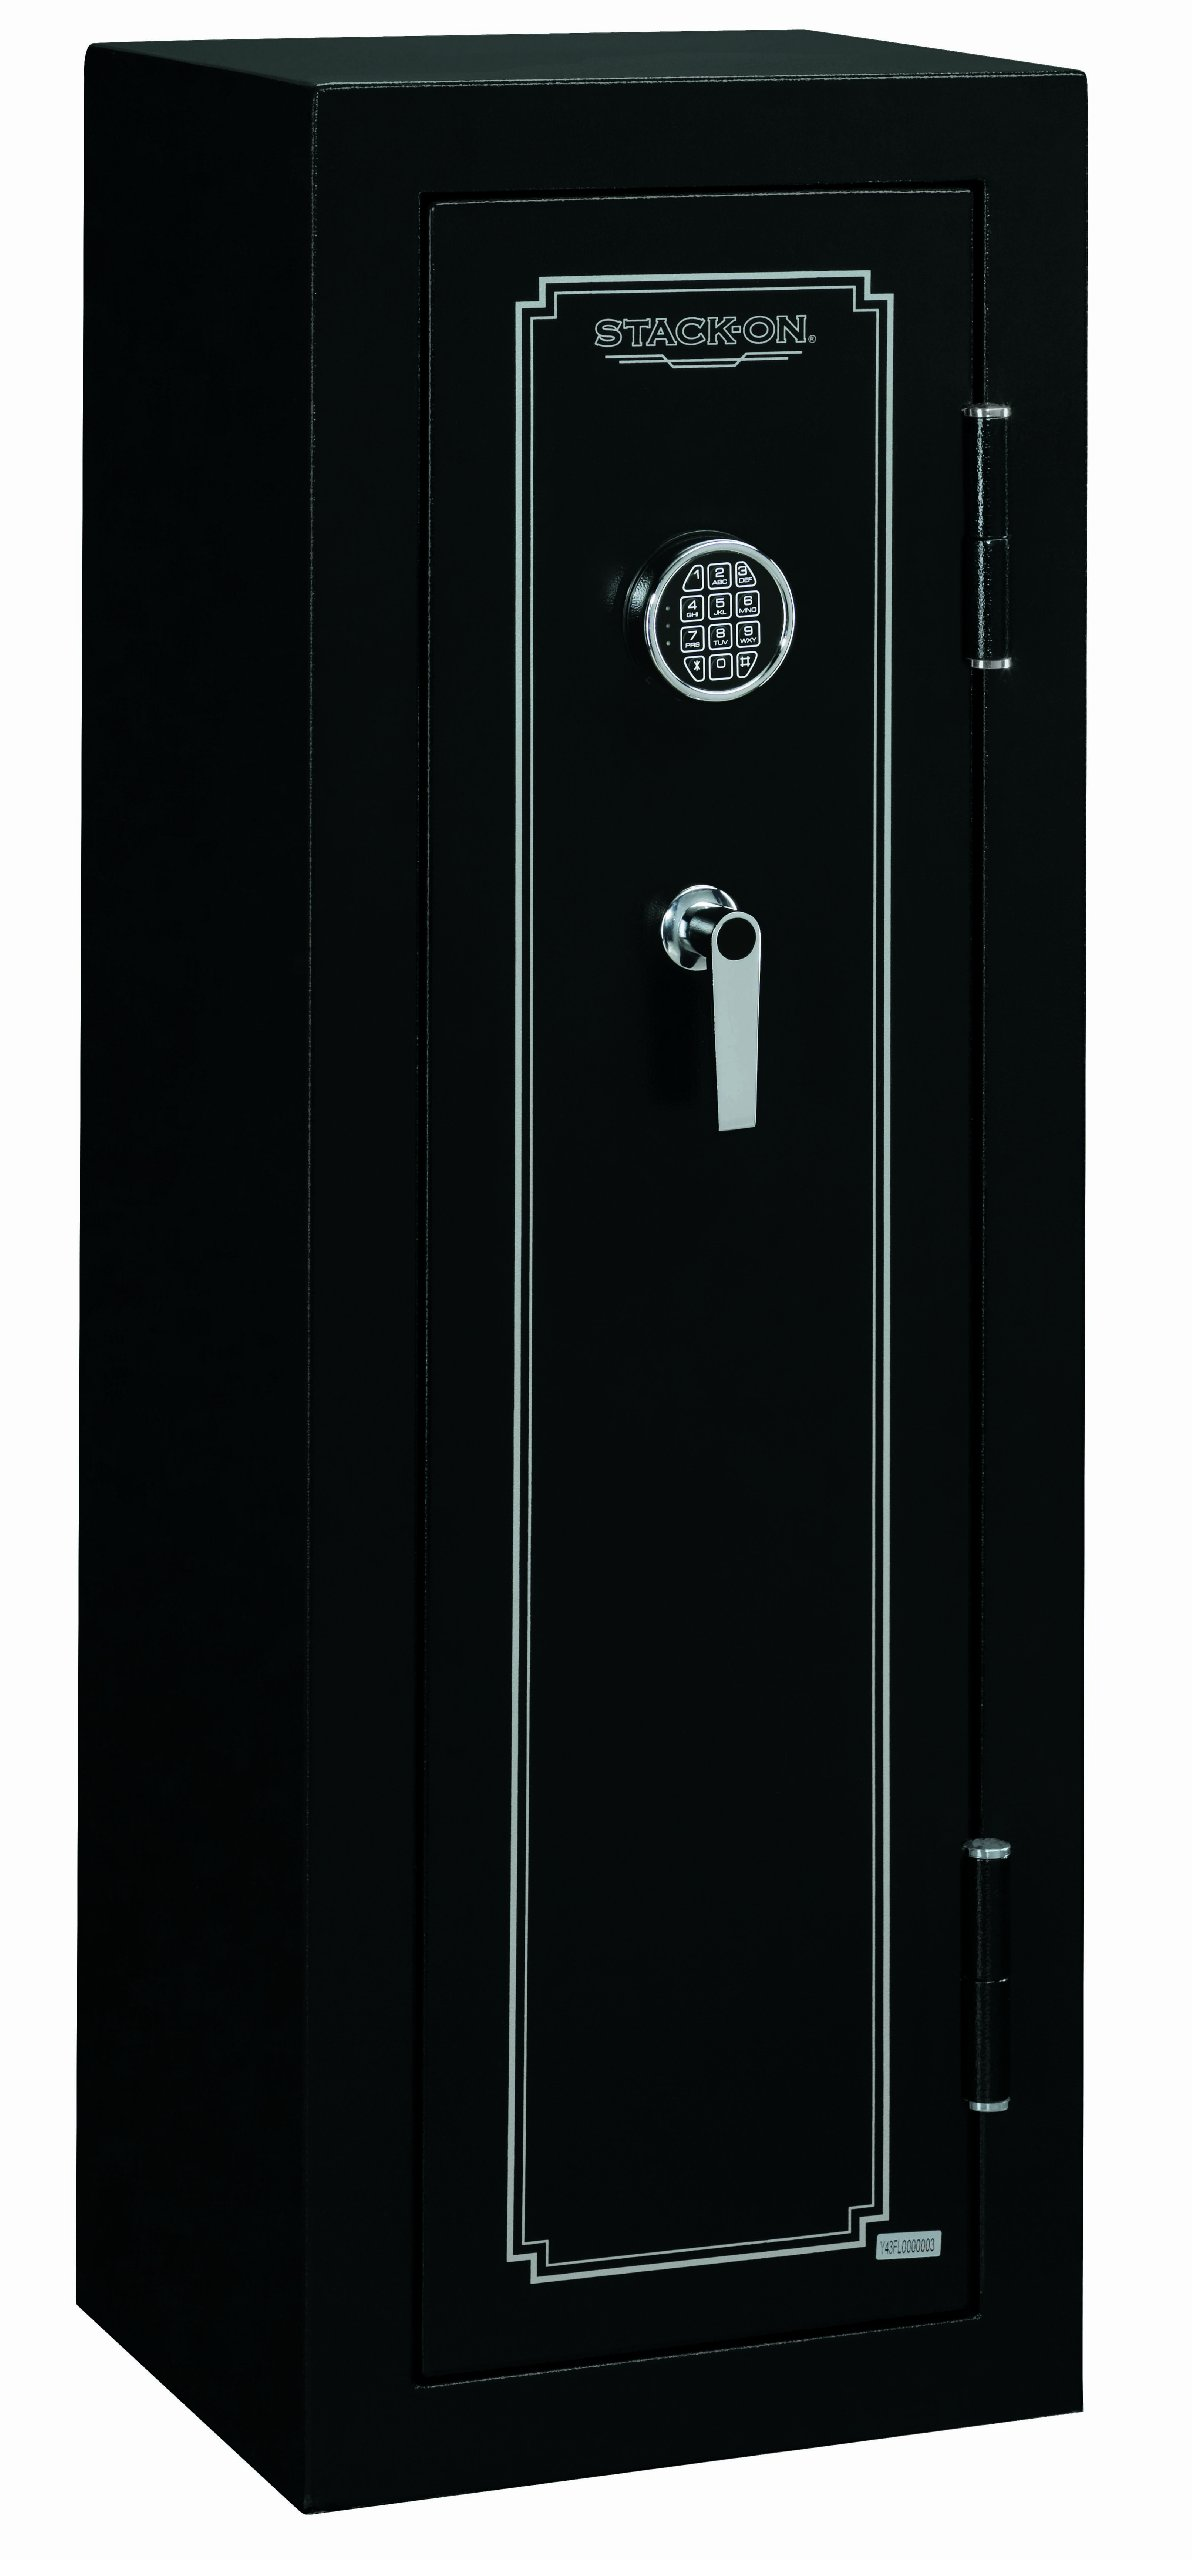 Stack-On FS-8-MB-E 8-Gun Fire Resistant Safe with Electronic Lock, Matte Black by Stack-On